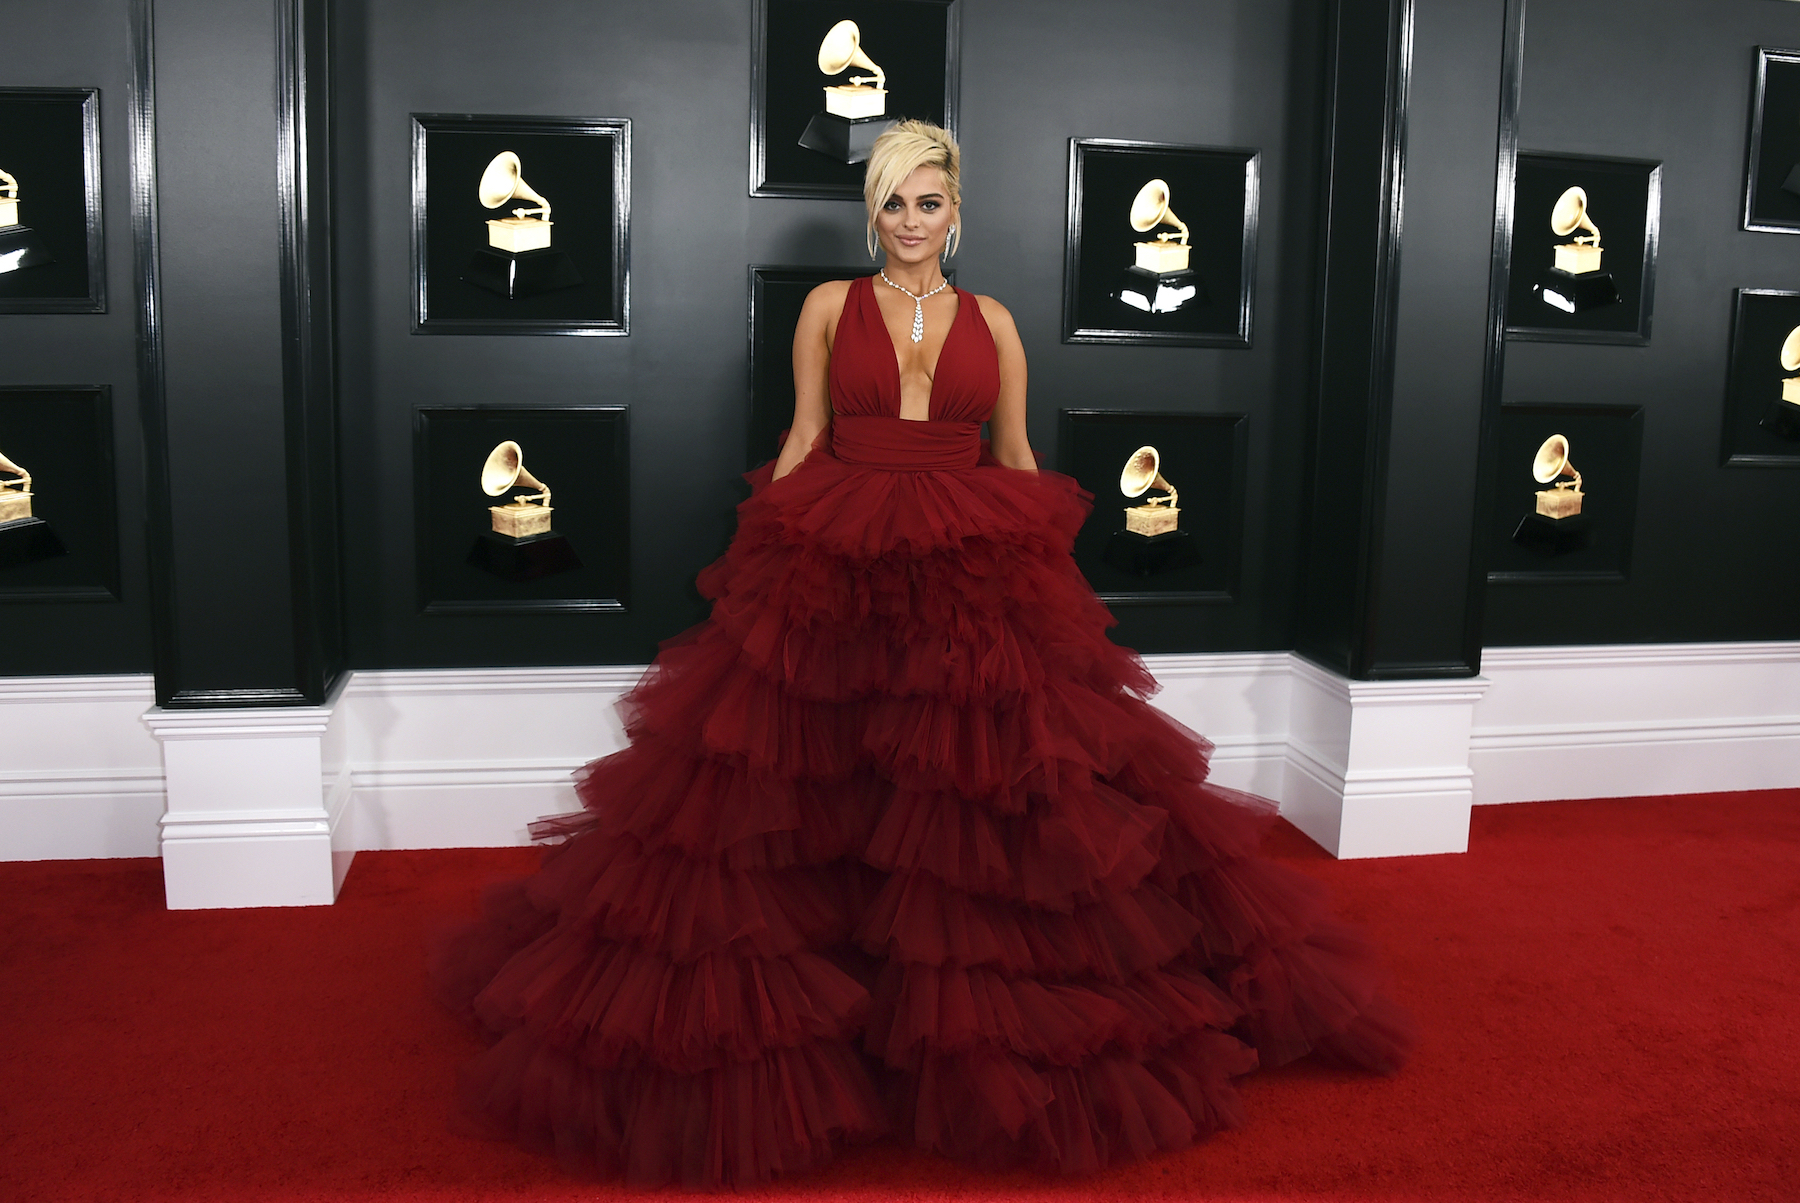 Grammy: Grammys 2019 Red Carpet: Joy Villa, Ricky Rebel Show